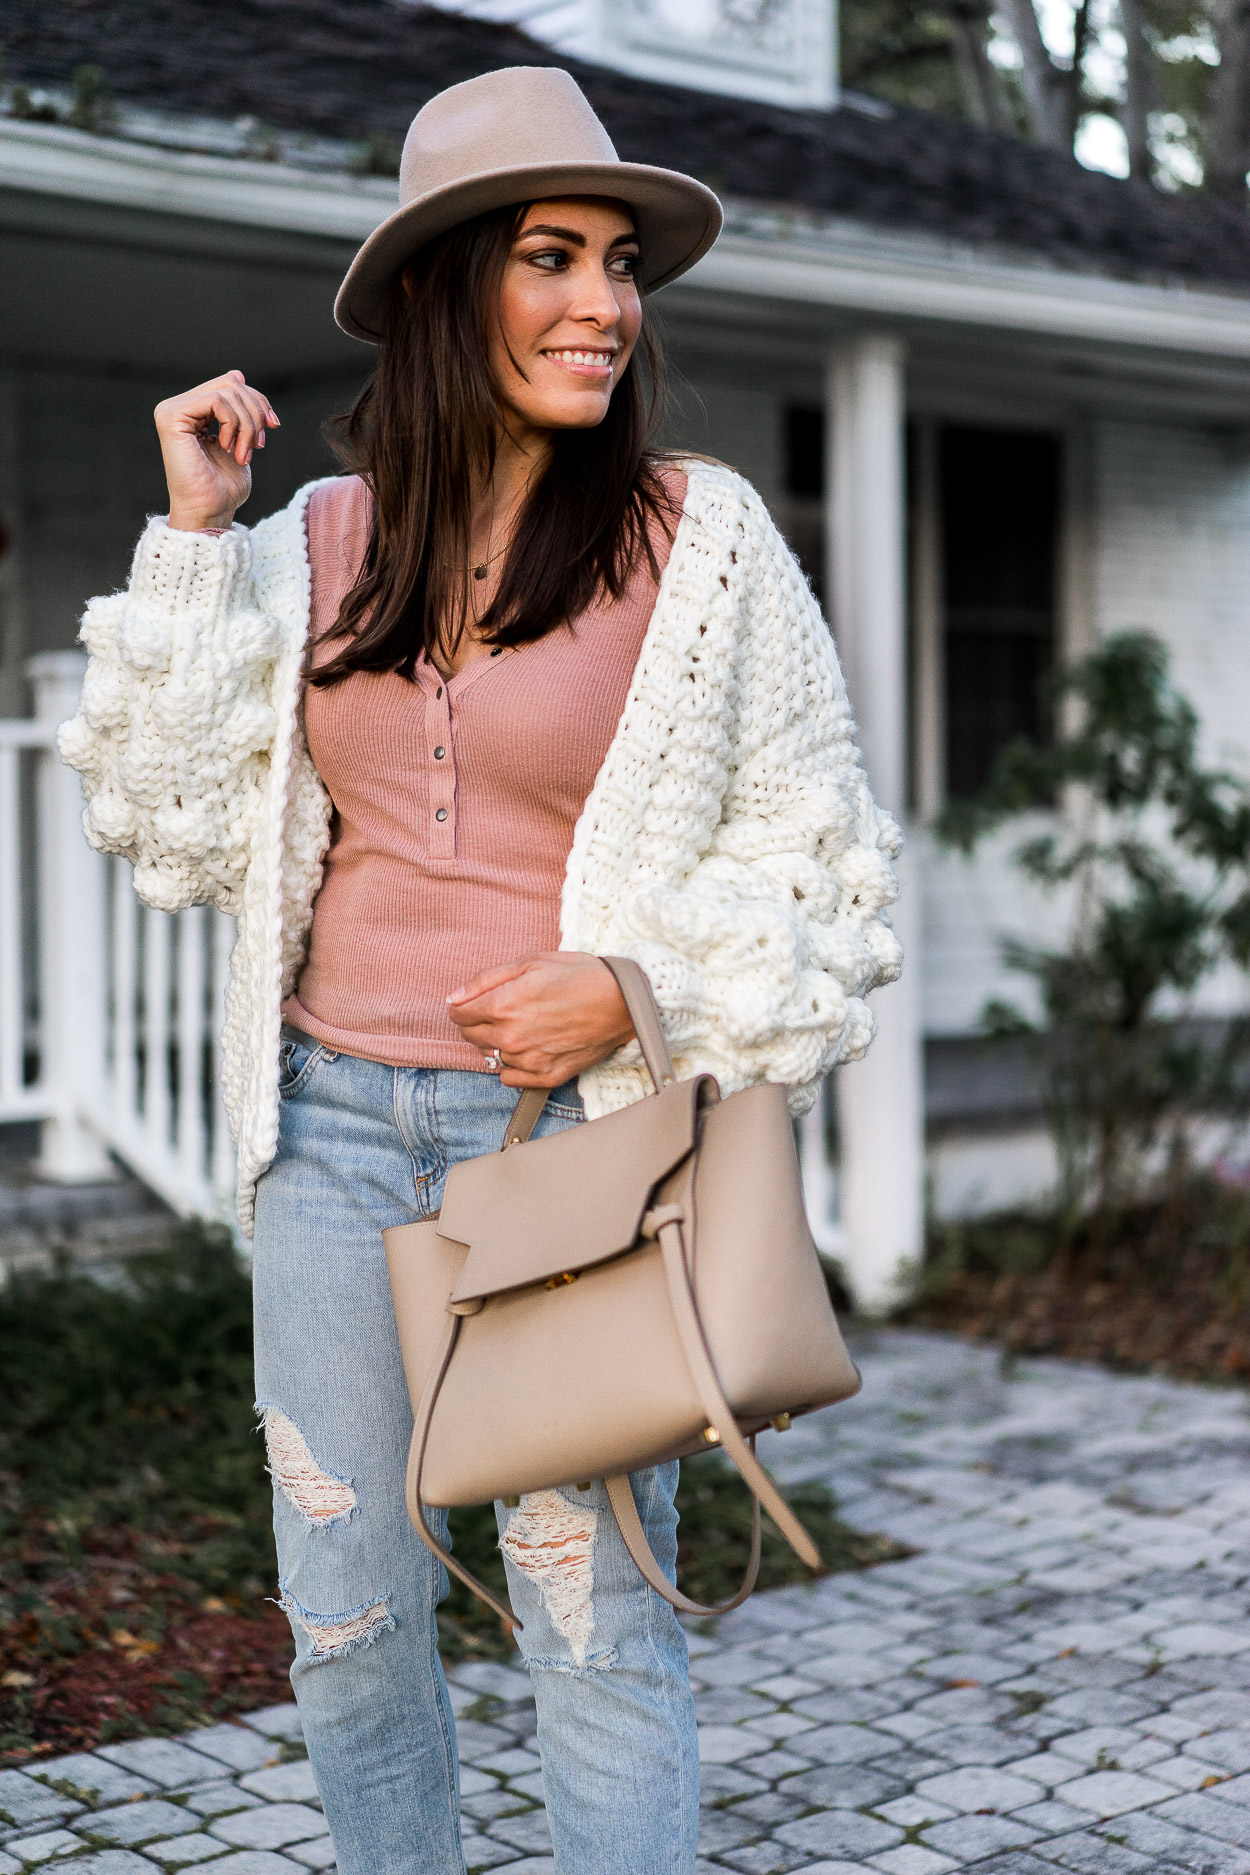 Chicwish white chunky cardigan is chic with a blush henley tee from Urban Outfitters styled by South Florida fashion blogger Amanda of A Glam Lifestyle with her Celine Belt bag